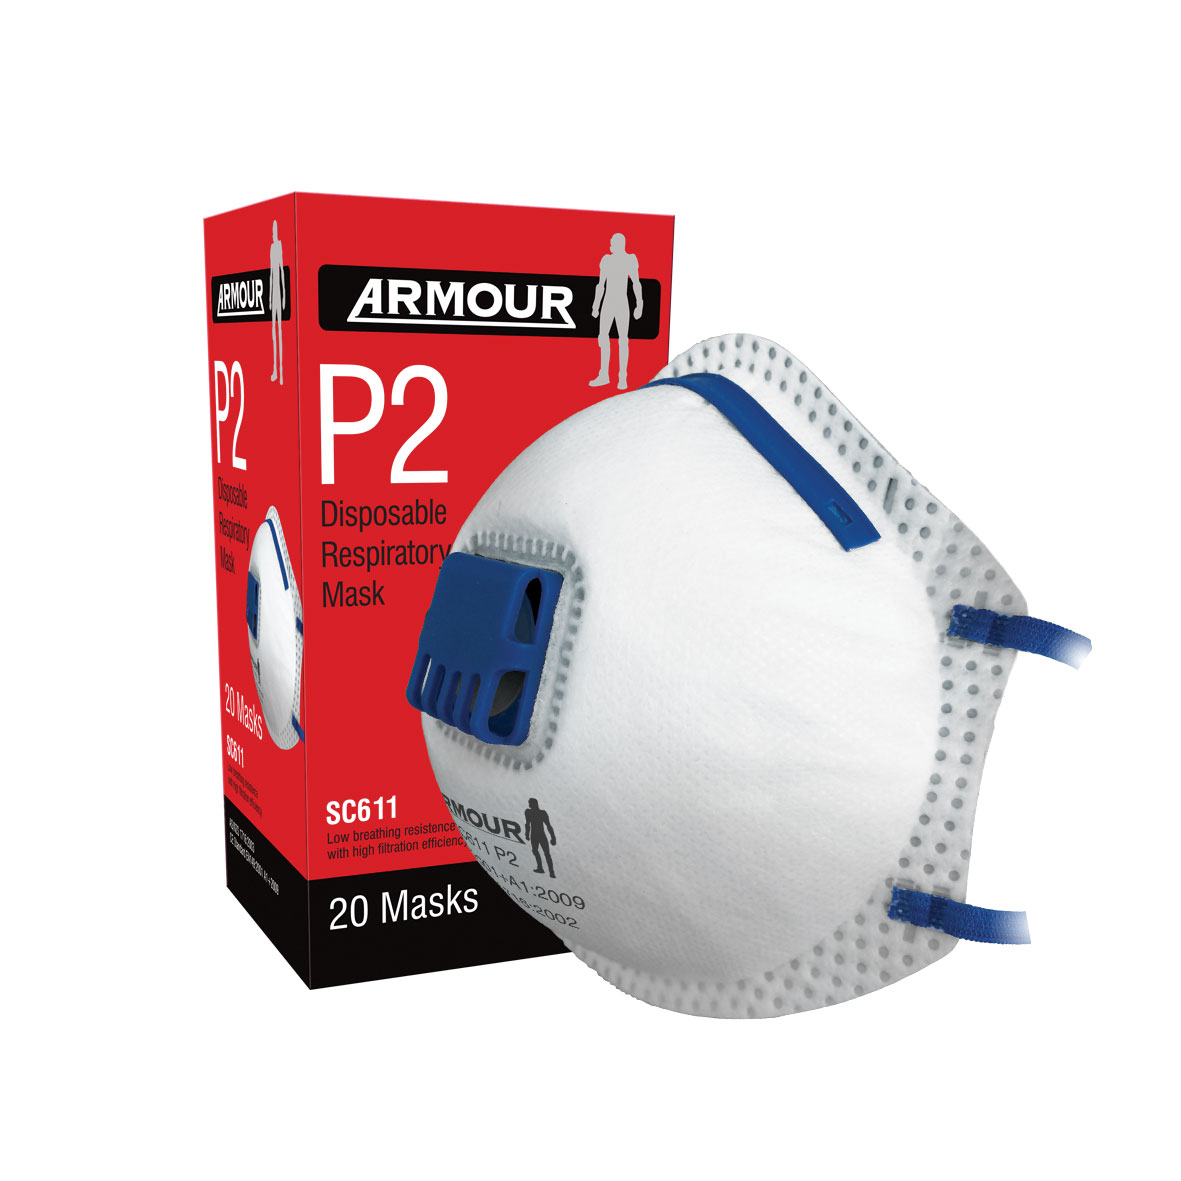 Armour Safety Products Ltd. - Armour Disposable Respirator Valve P2 Mask